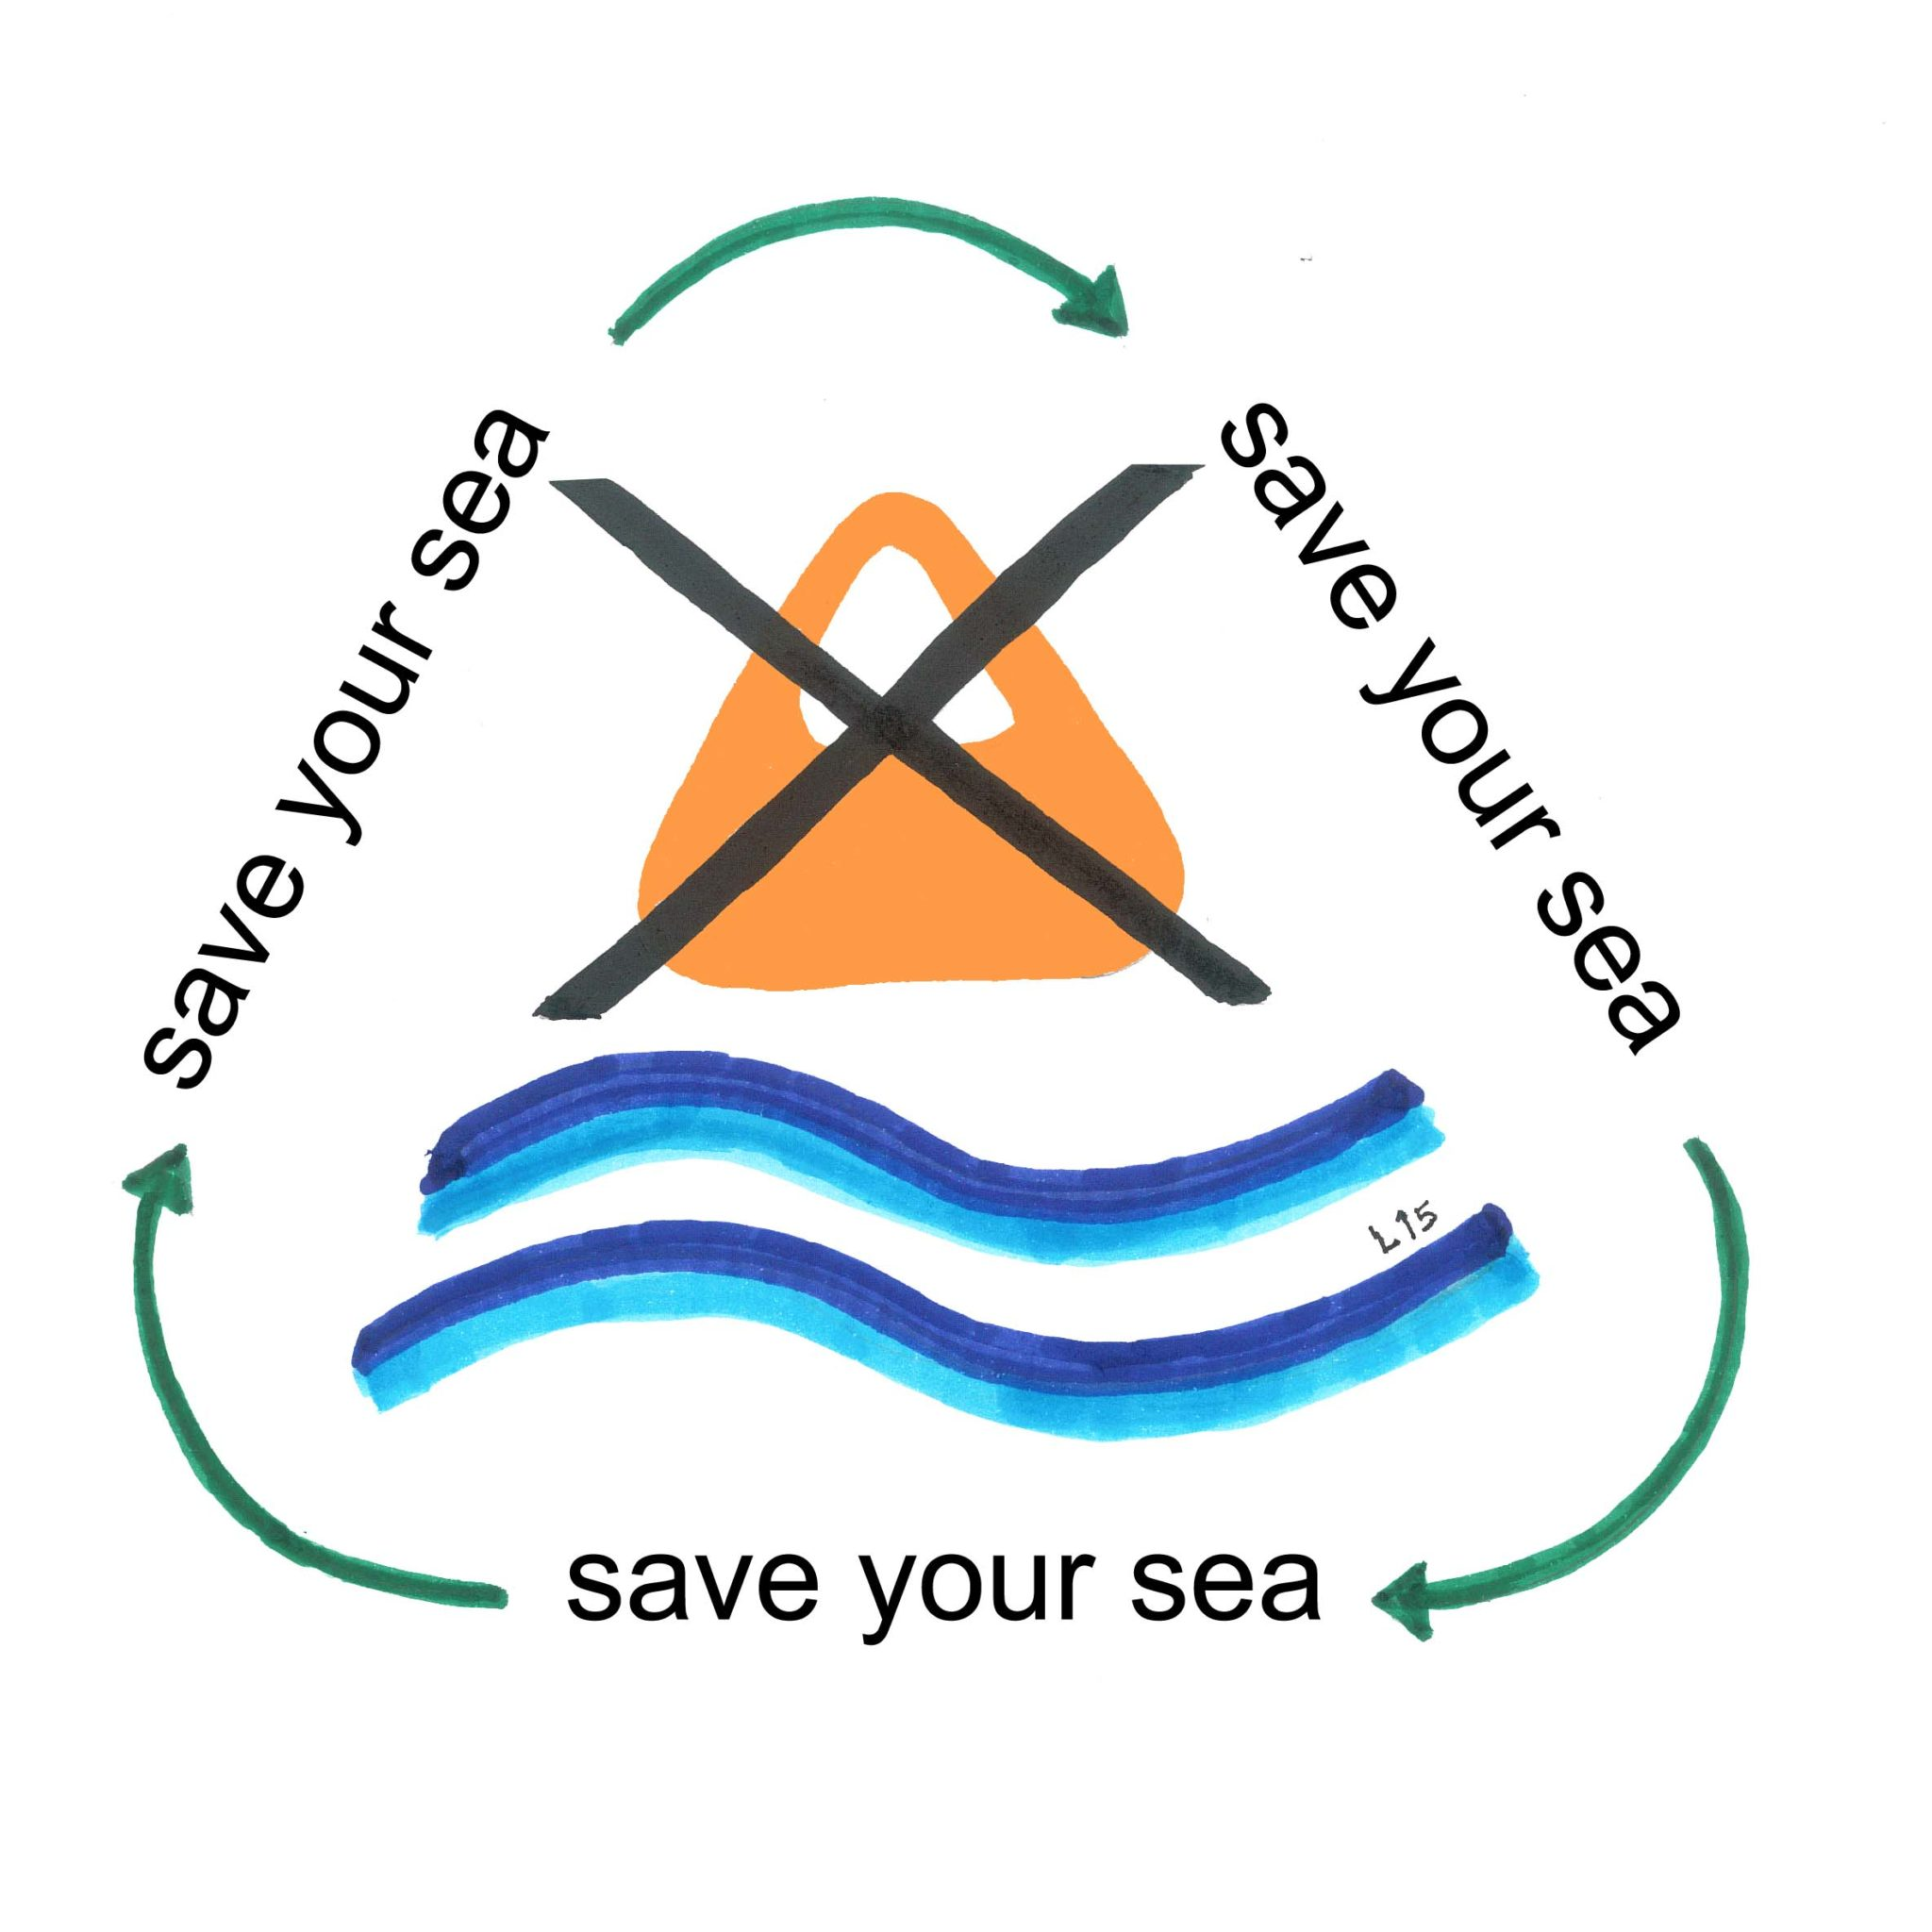 save your sea-ok